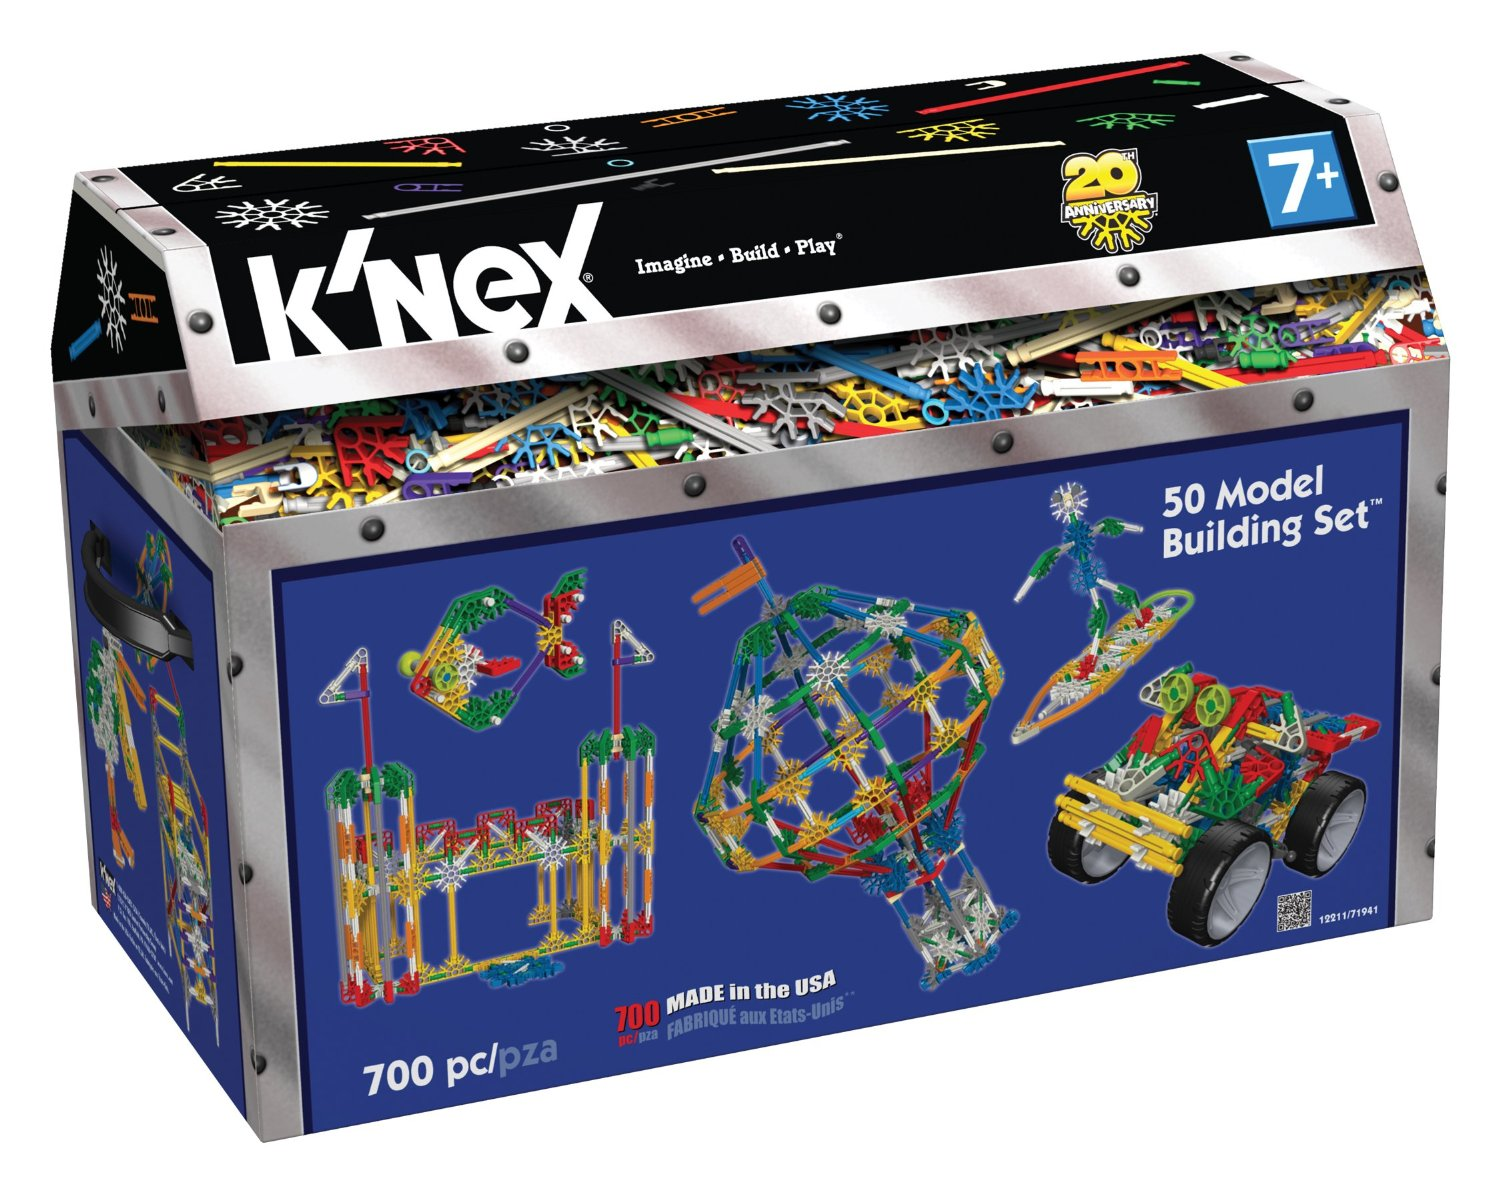 Best Building Toys For Boys : Building toys for boys and girls top ten holiday lists